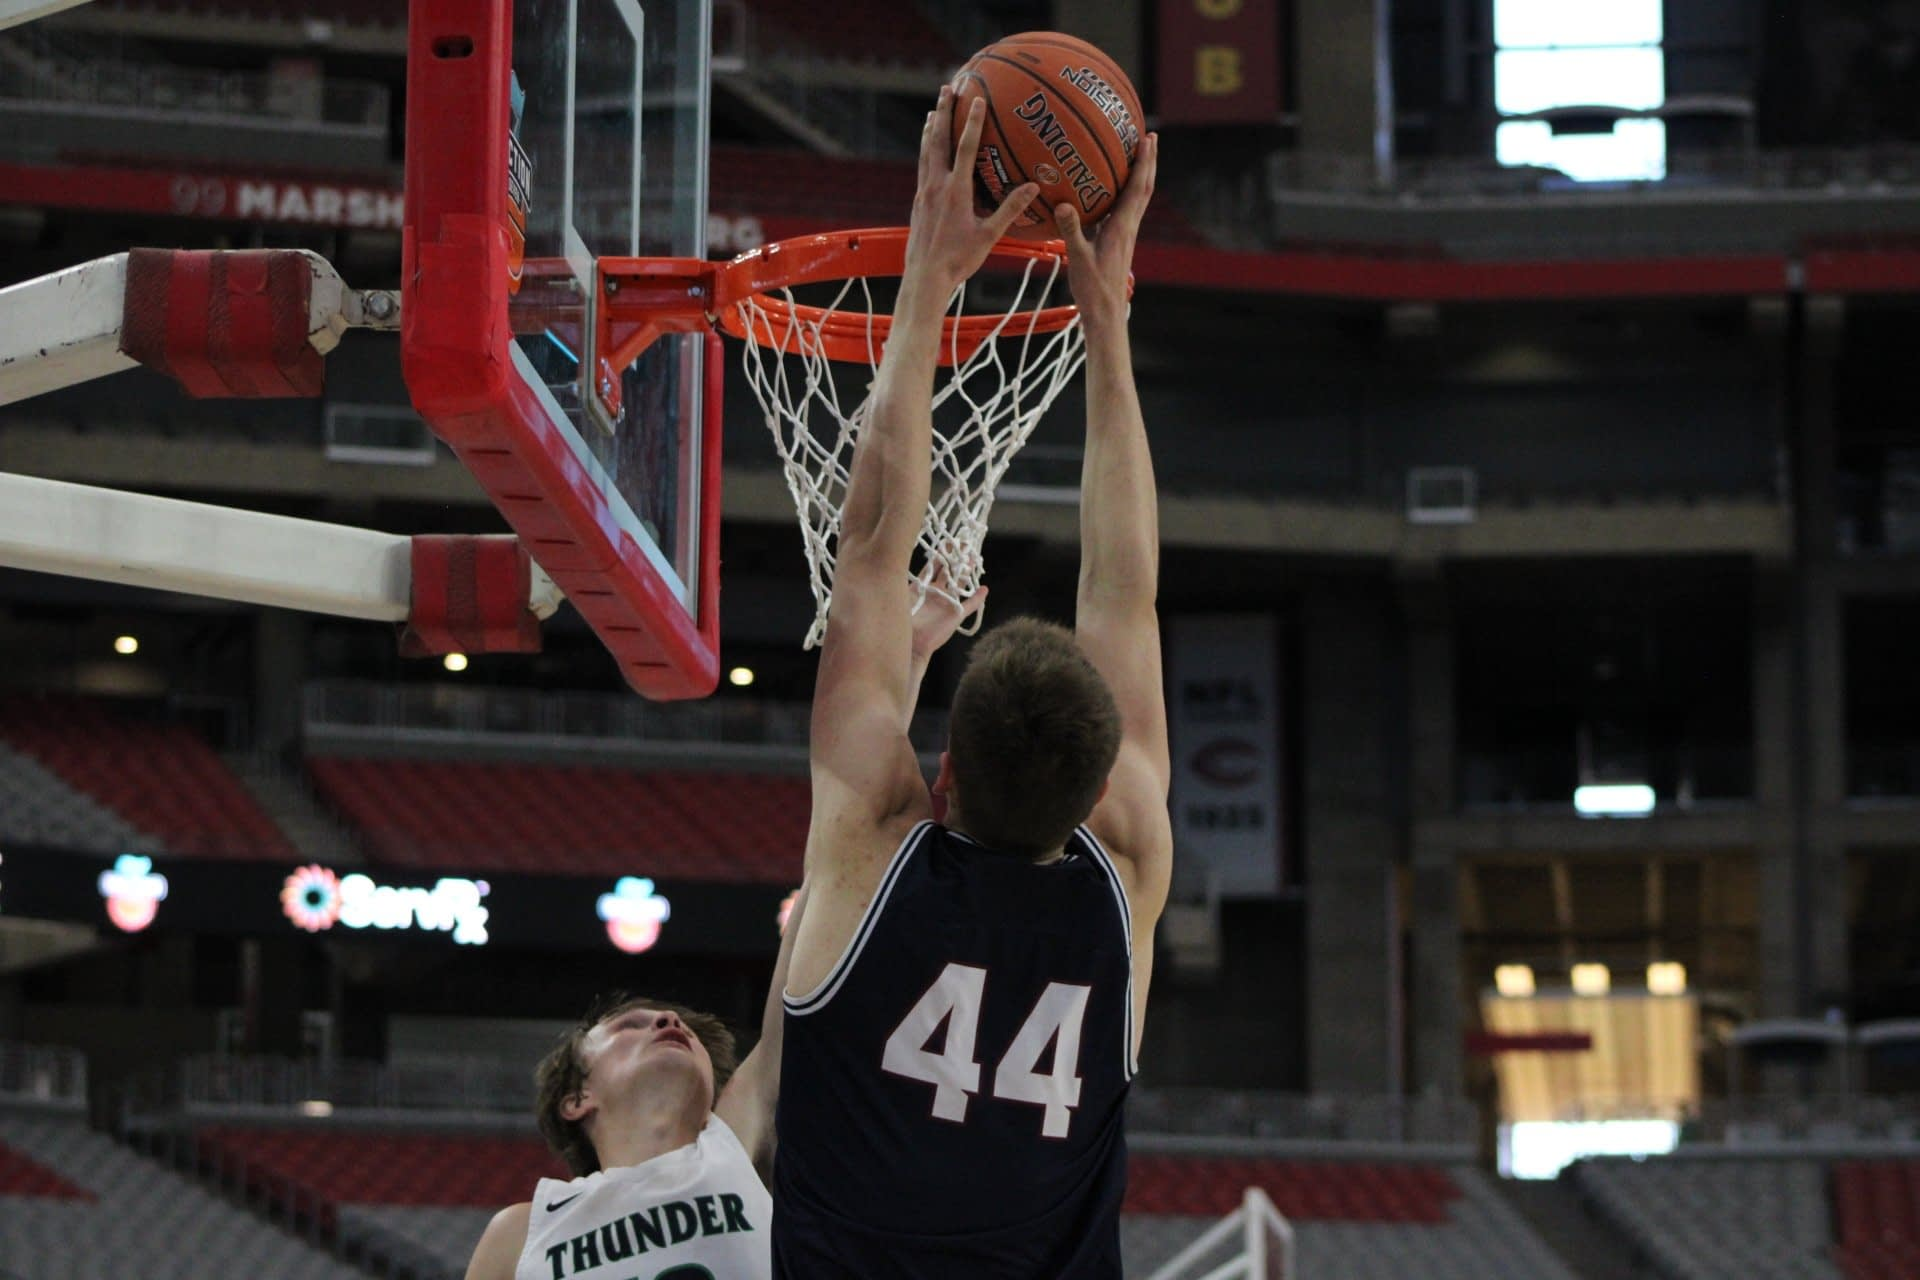 Dylan-Anderson-dunk